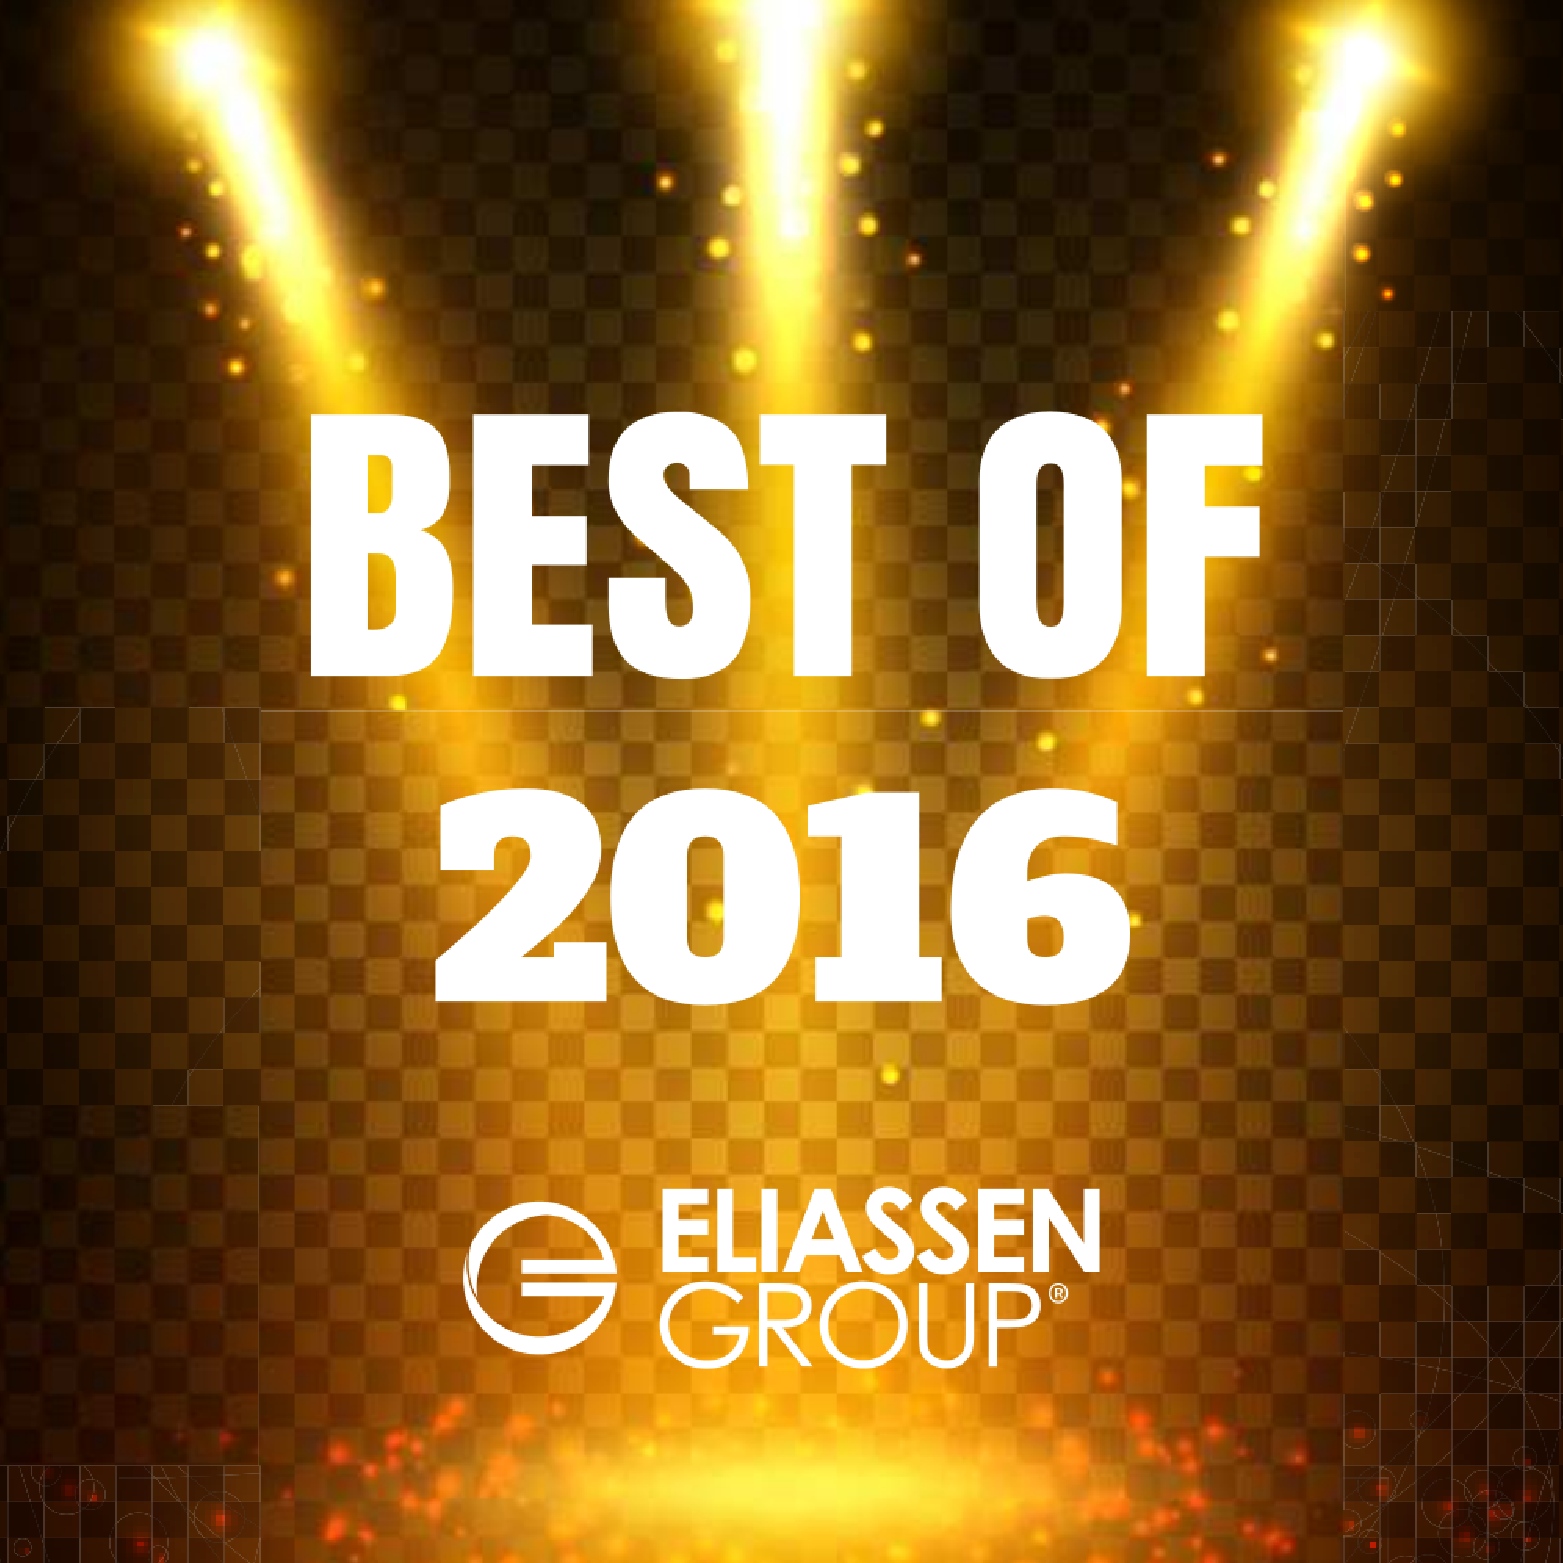 The Best Eliassen Group Recruiting & Job Search Advice of 2016